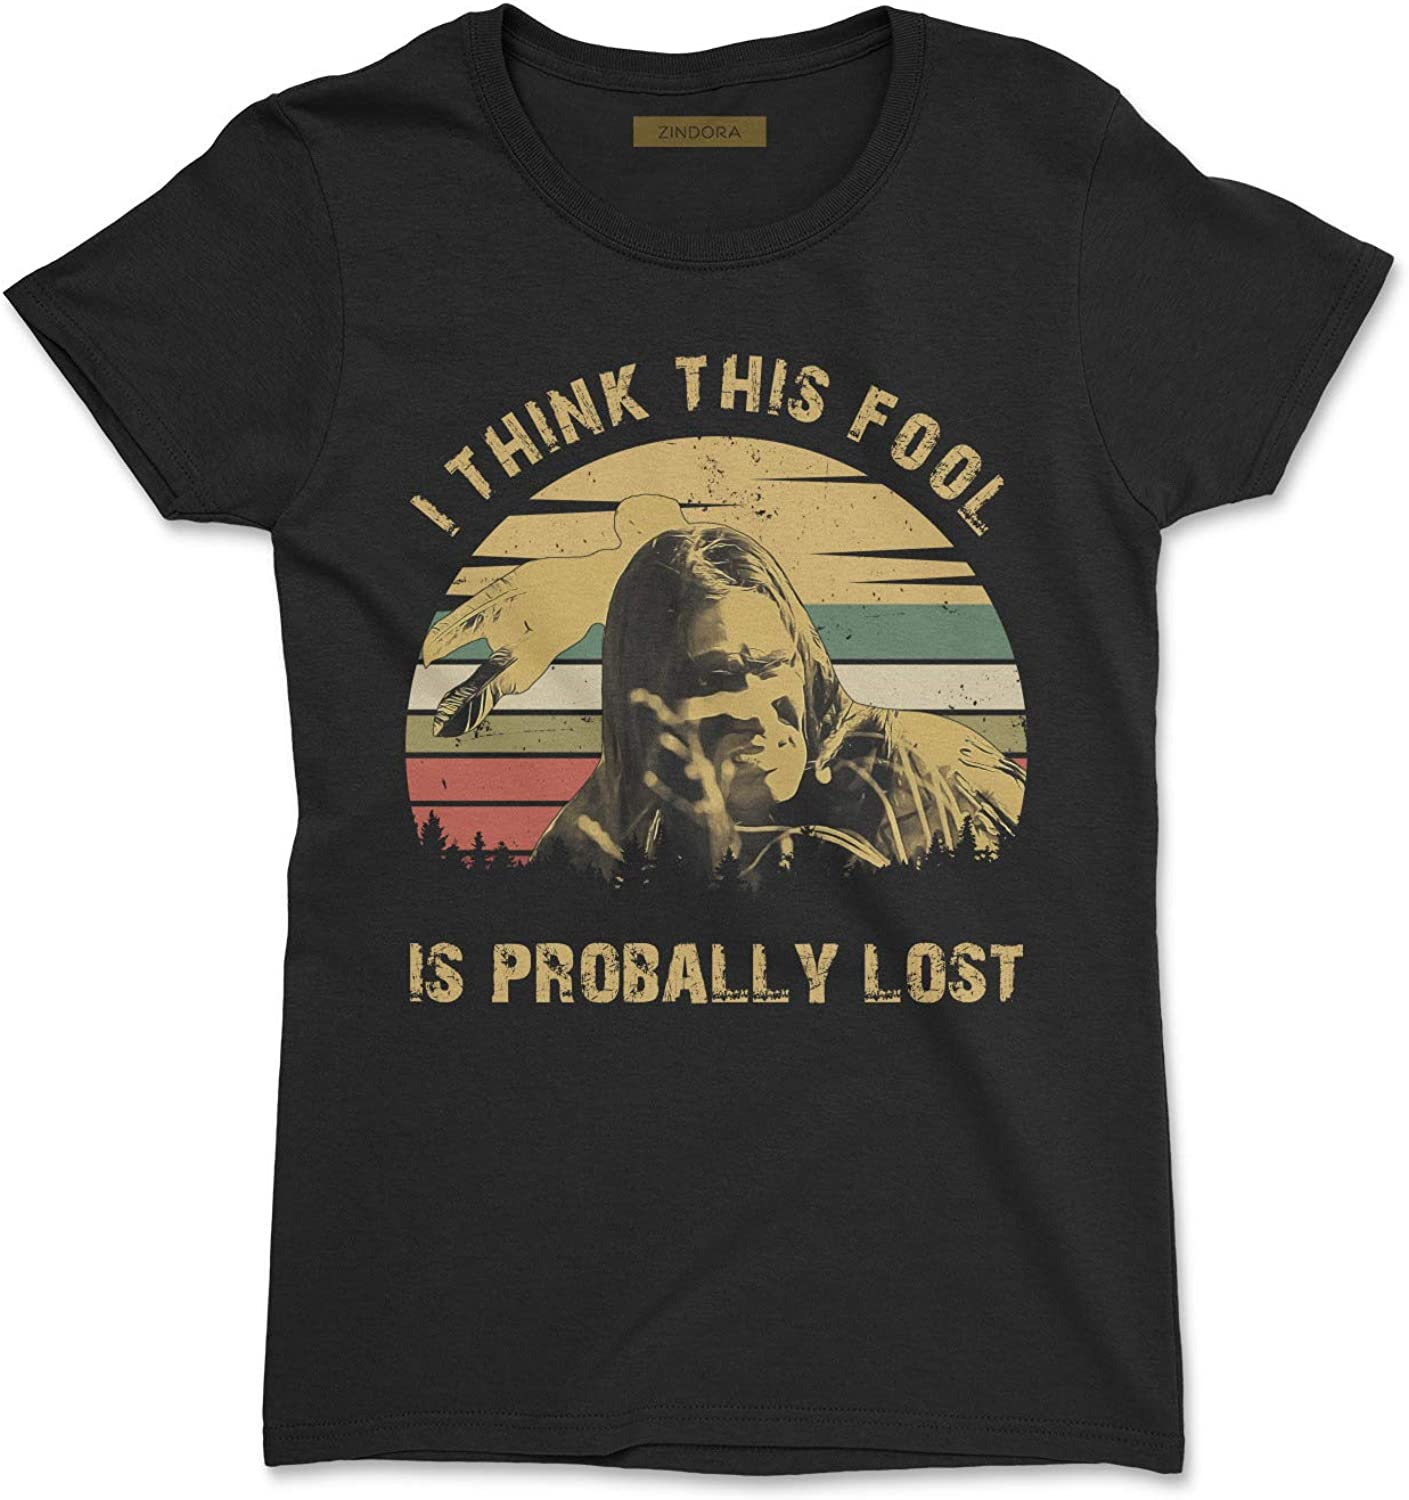 I Think This Fool is Probally Lost Vintage T-Shirt